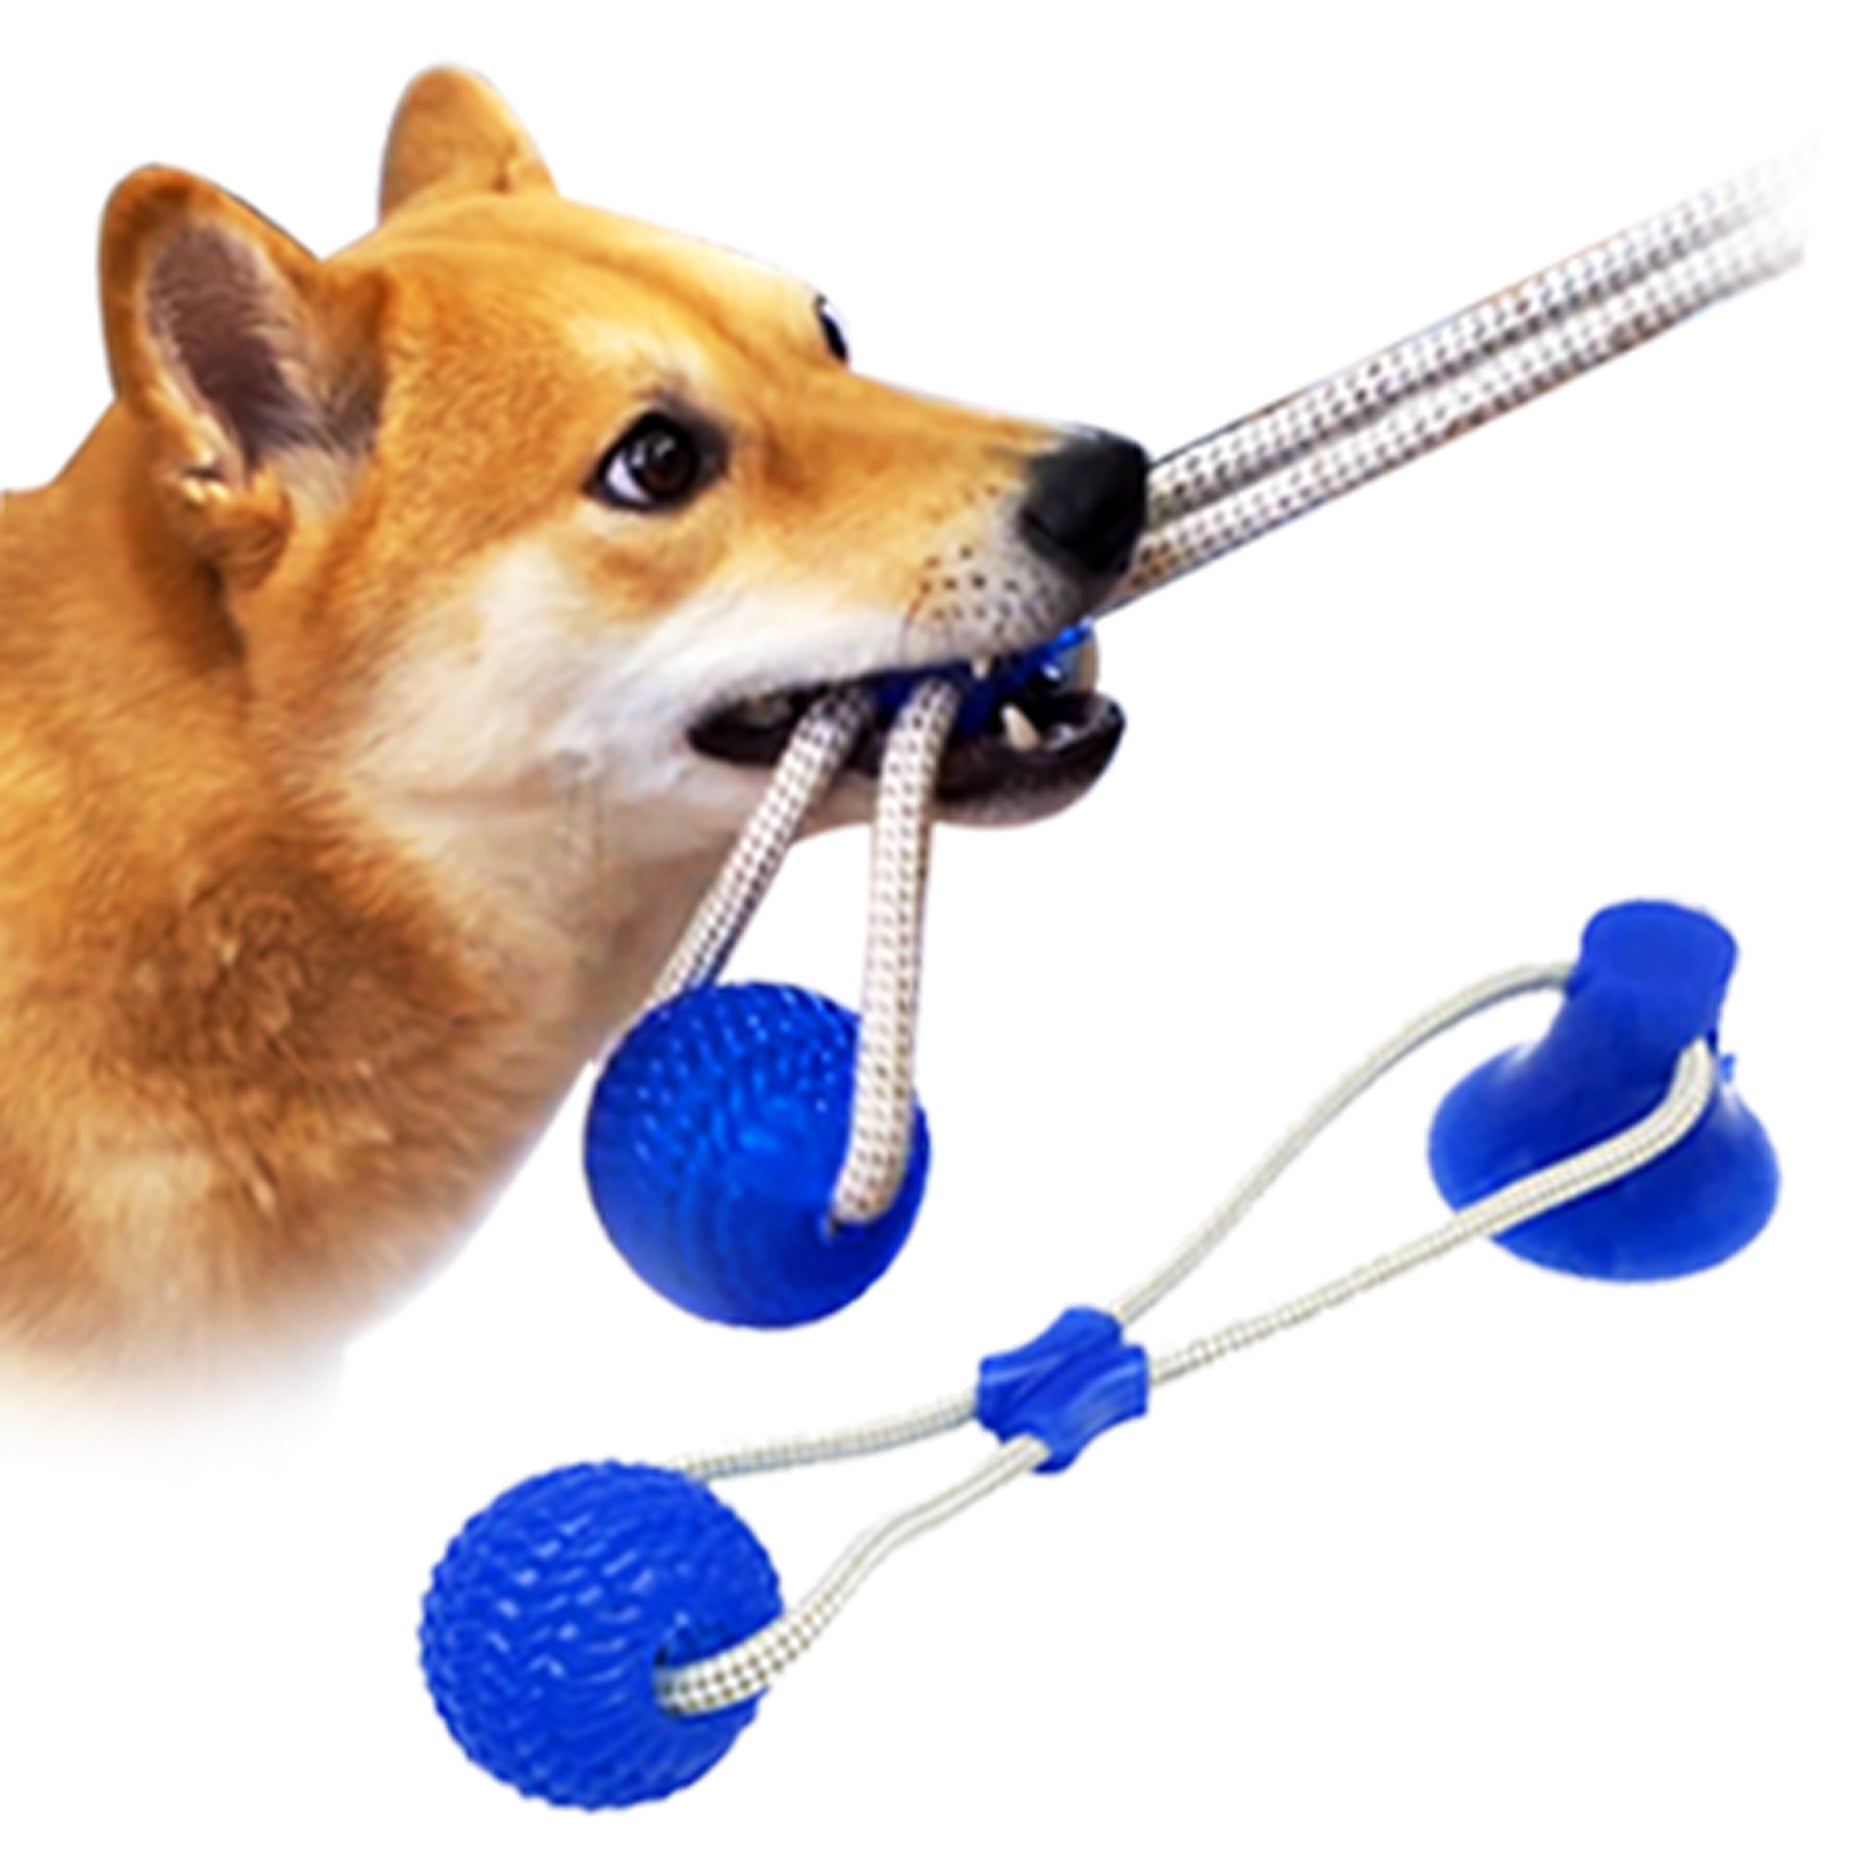 Just Stick It Dog Toy